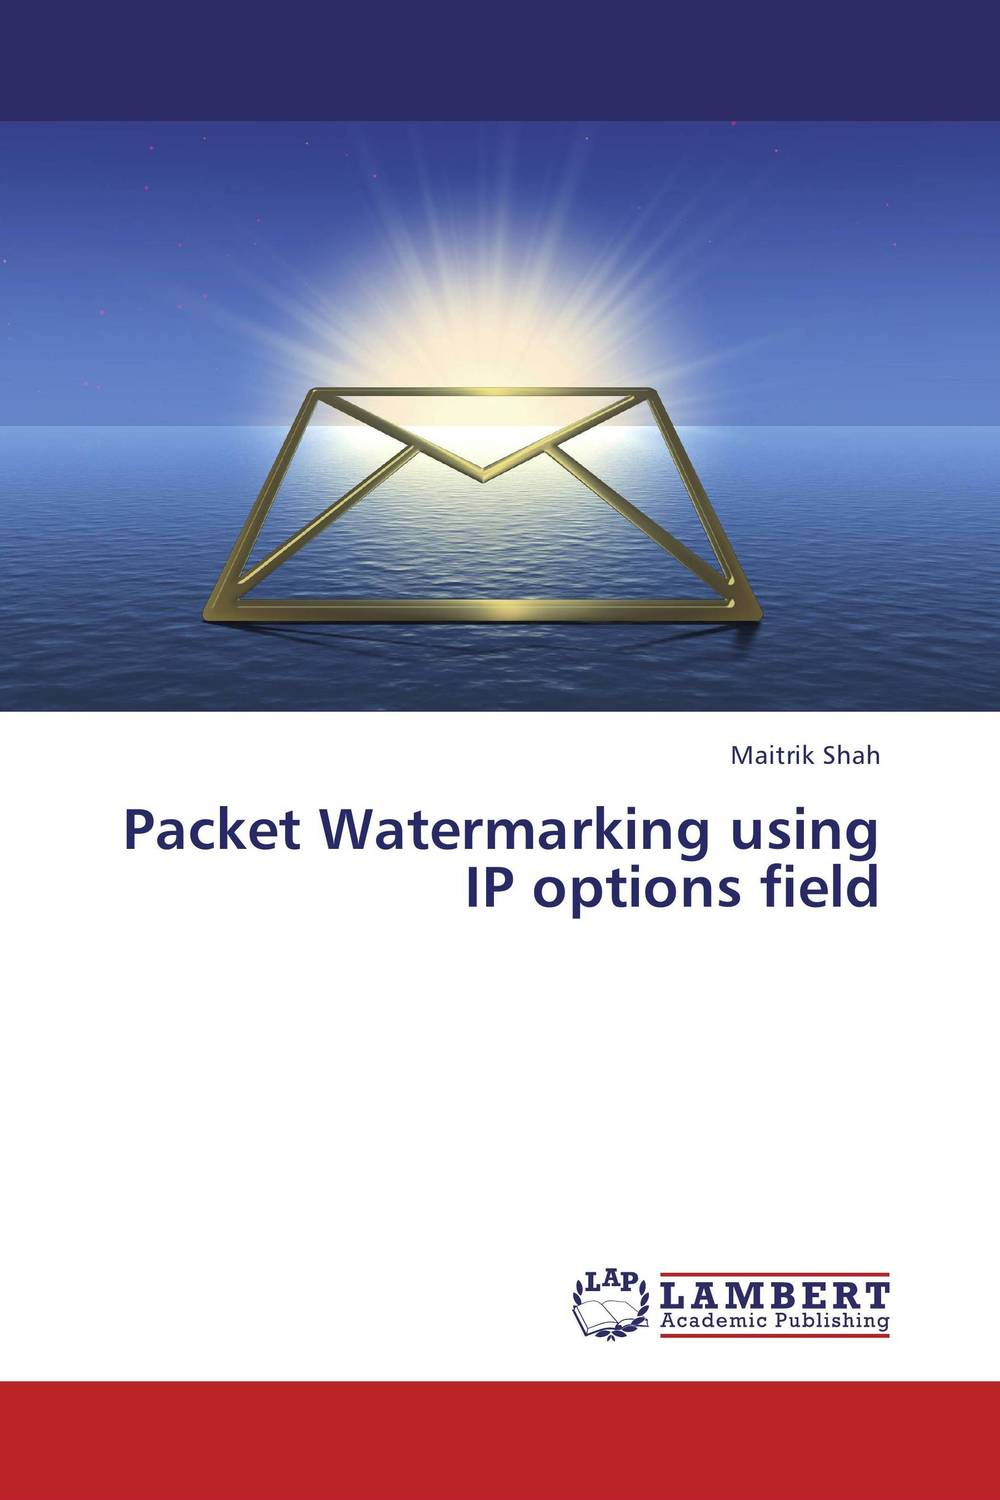 Packet Watermarking using IP options field a physician s guide to pain and symptom management in cancer patients 2e